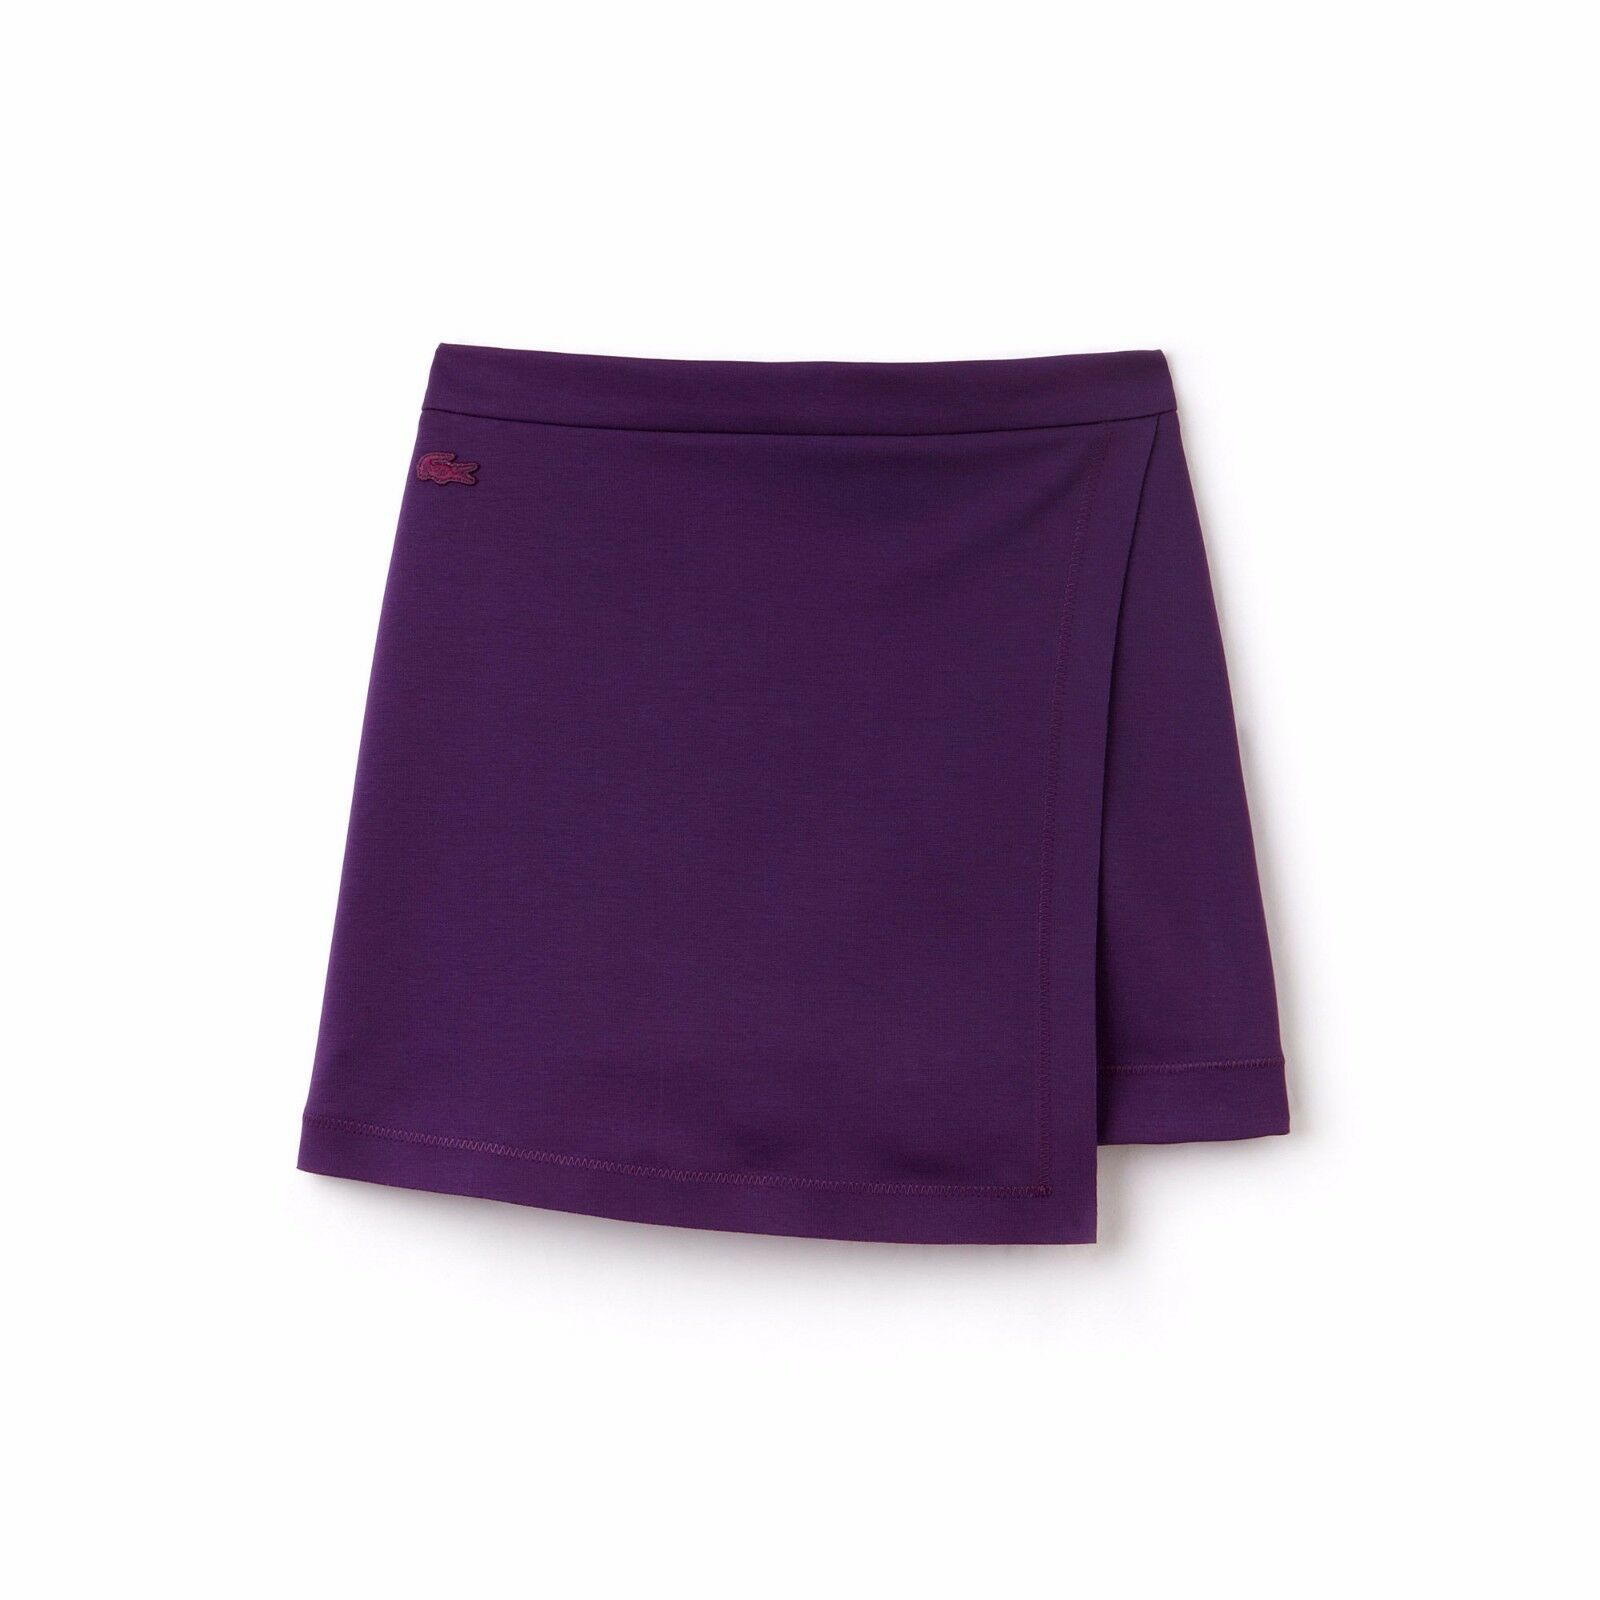 Lacoste Purple milano knit pleated skirt  Size 34 2      165    b9